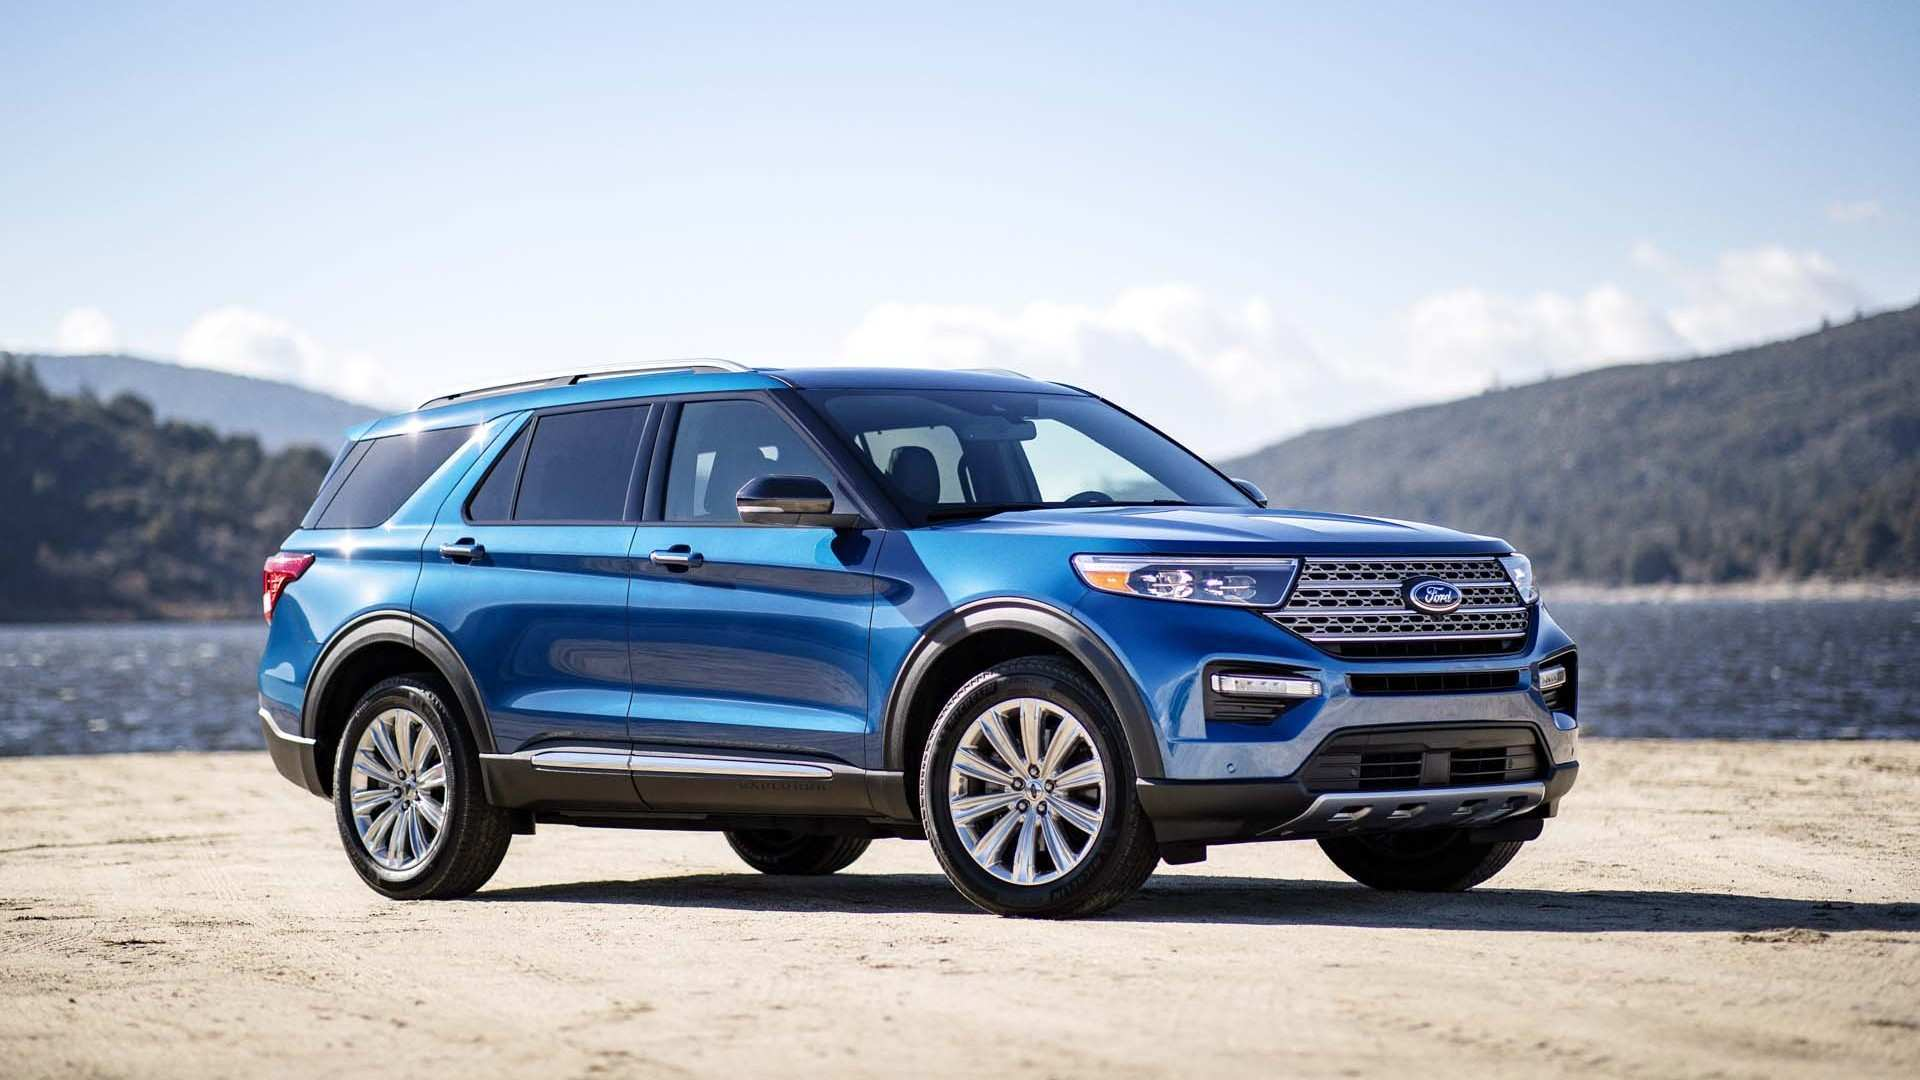 67 All New Price Of 2020 Ford Explorer Specs